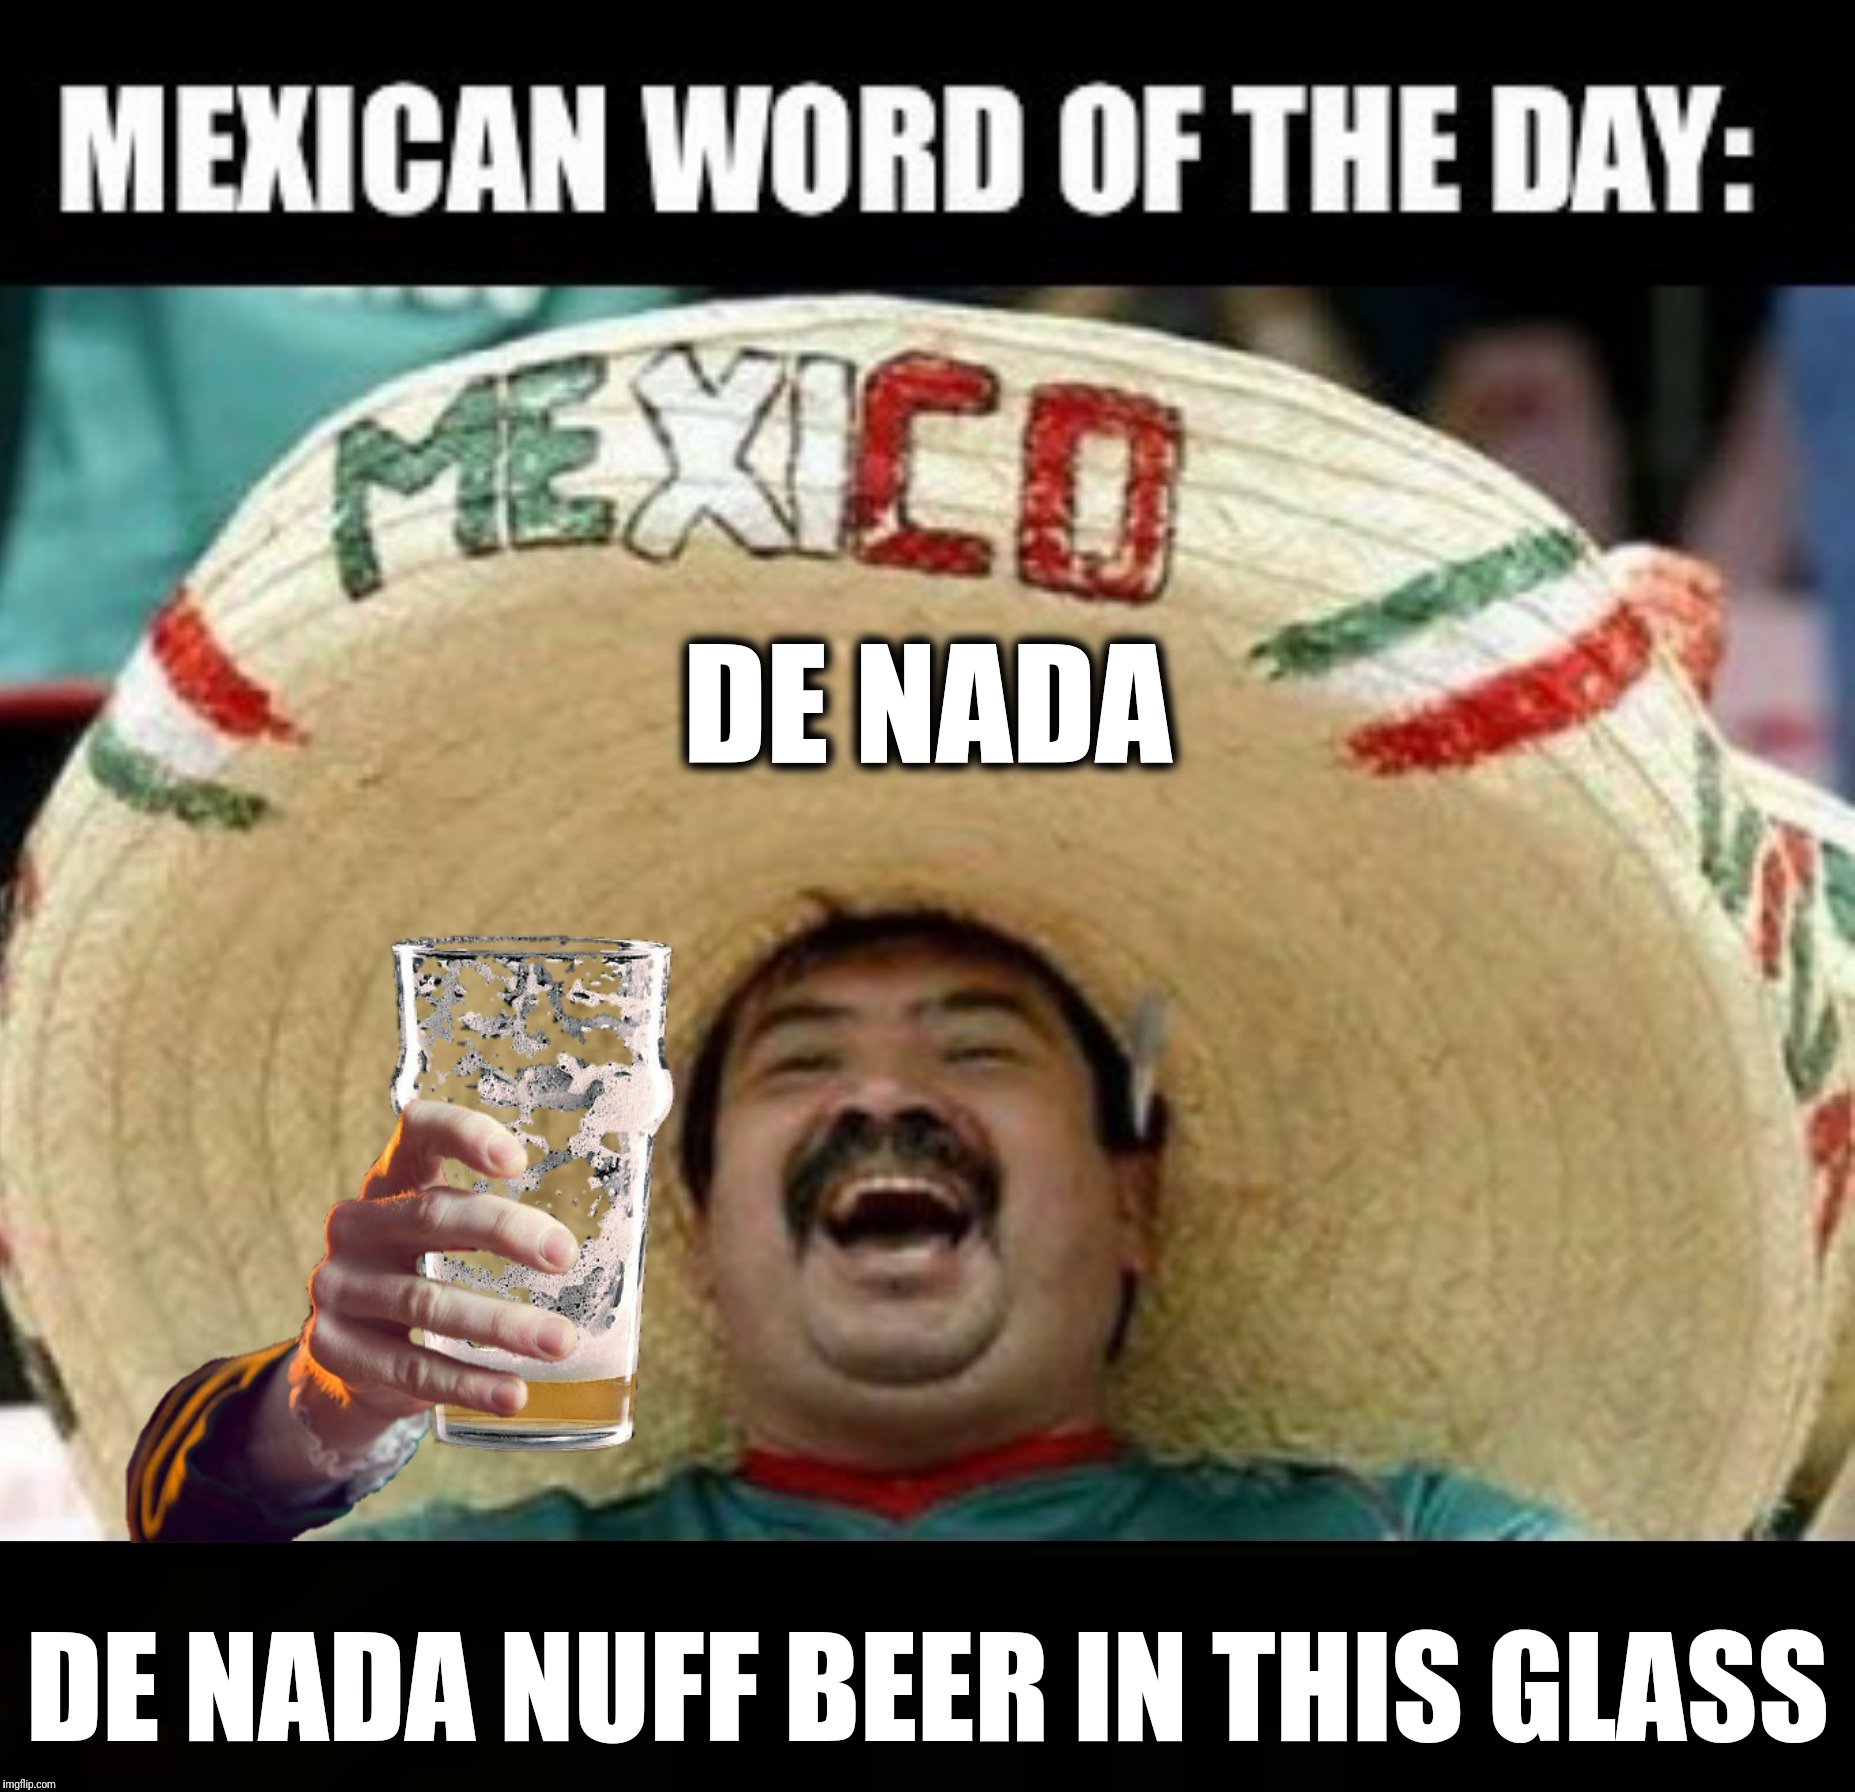 Bad Photoshop Sunday presents:  I drink a case a dia | DE NADA DE NADA NUFF BEER IN THIS GLASS | image tagged in bad photoshop sunday,mexican word of the day,beer,de nada,quesadilla | made w/ Imgflip meme maker